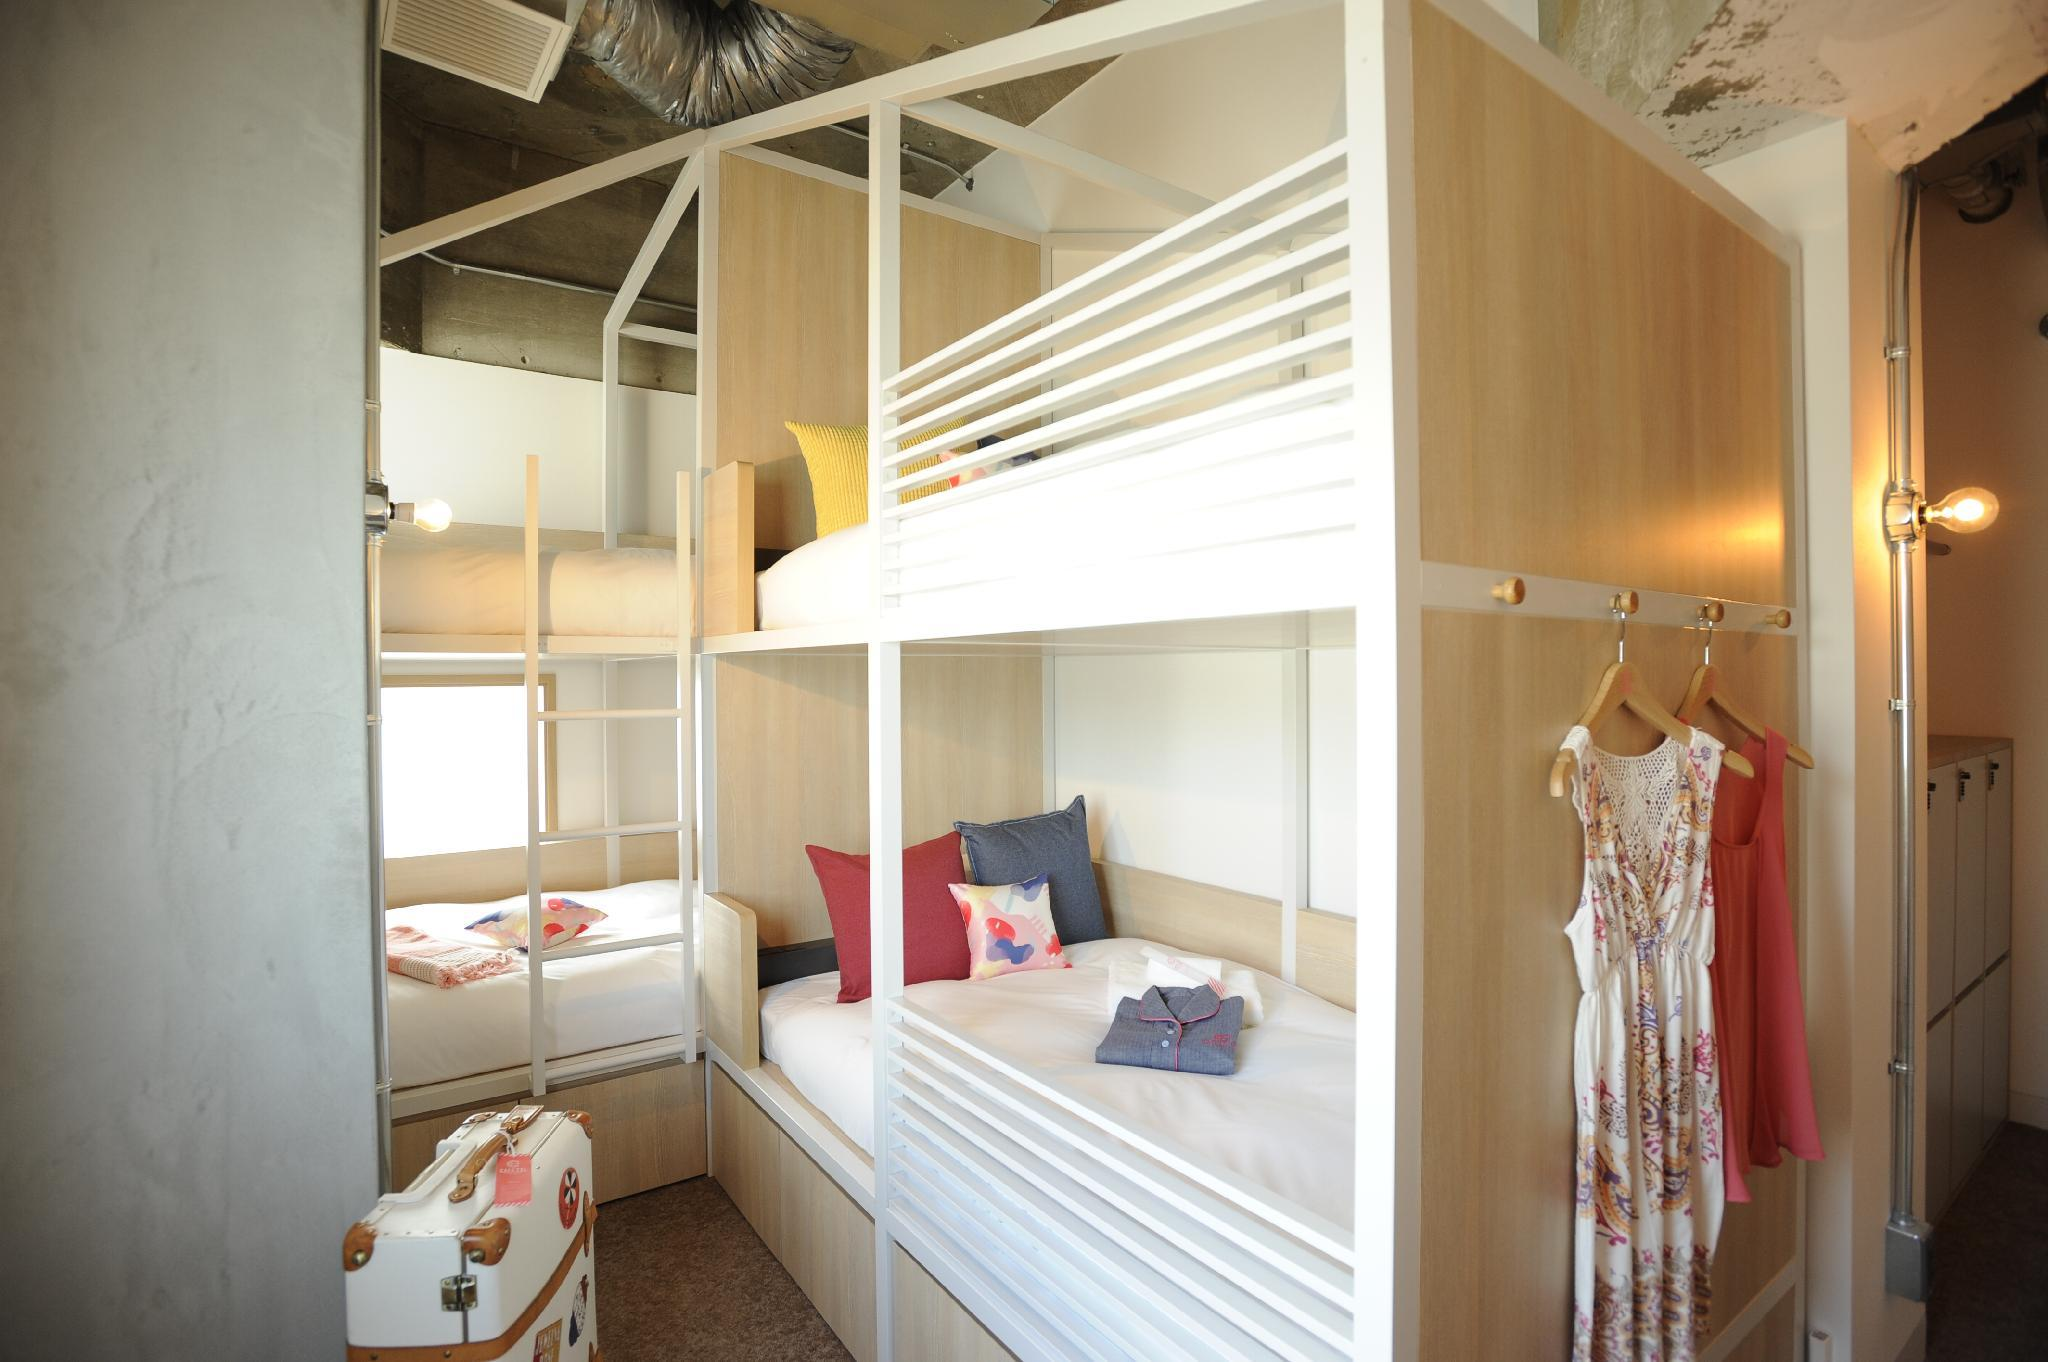 Private Room for 3 People with 2 Bunk Beds - Female Only